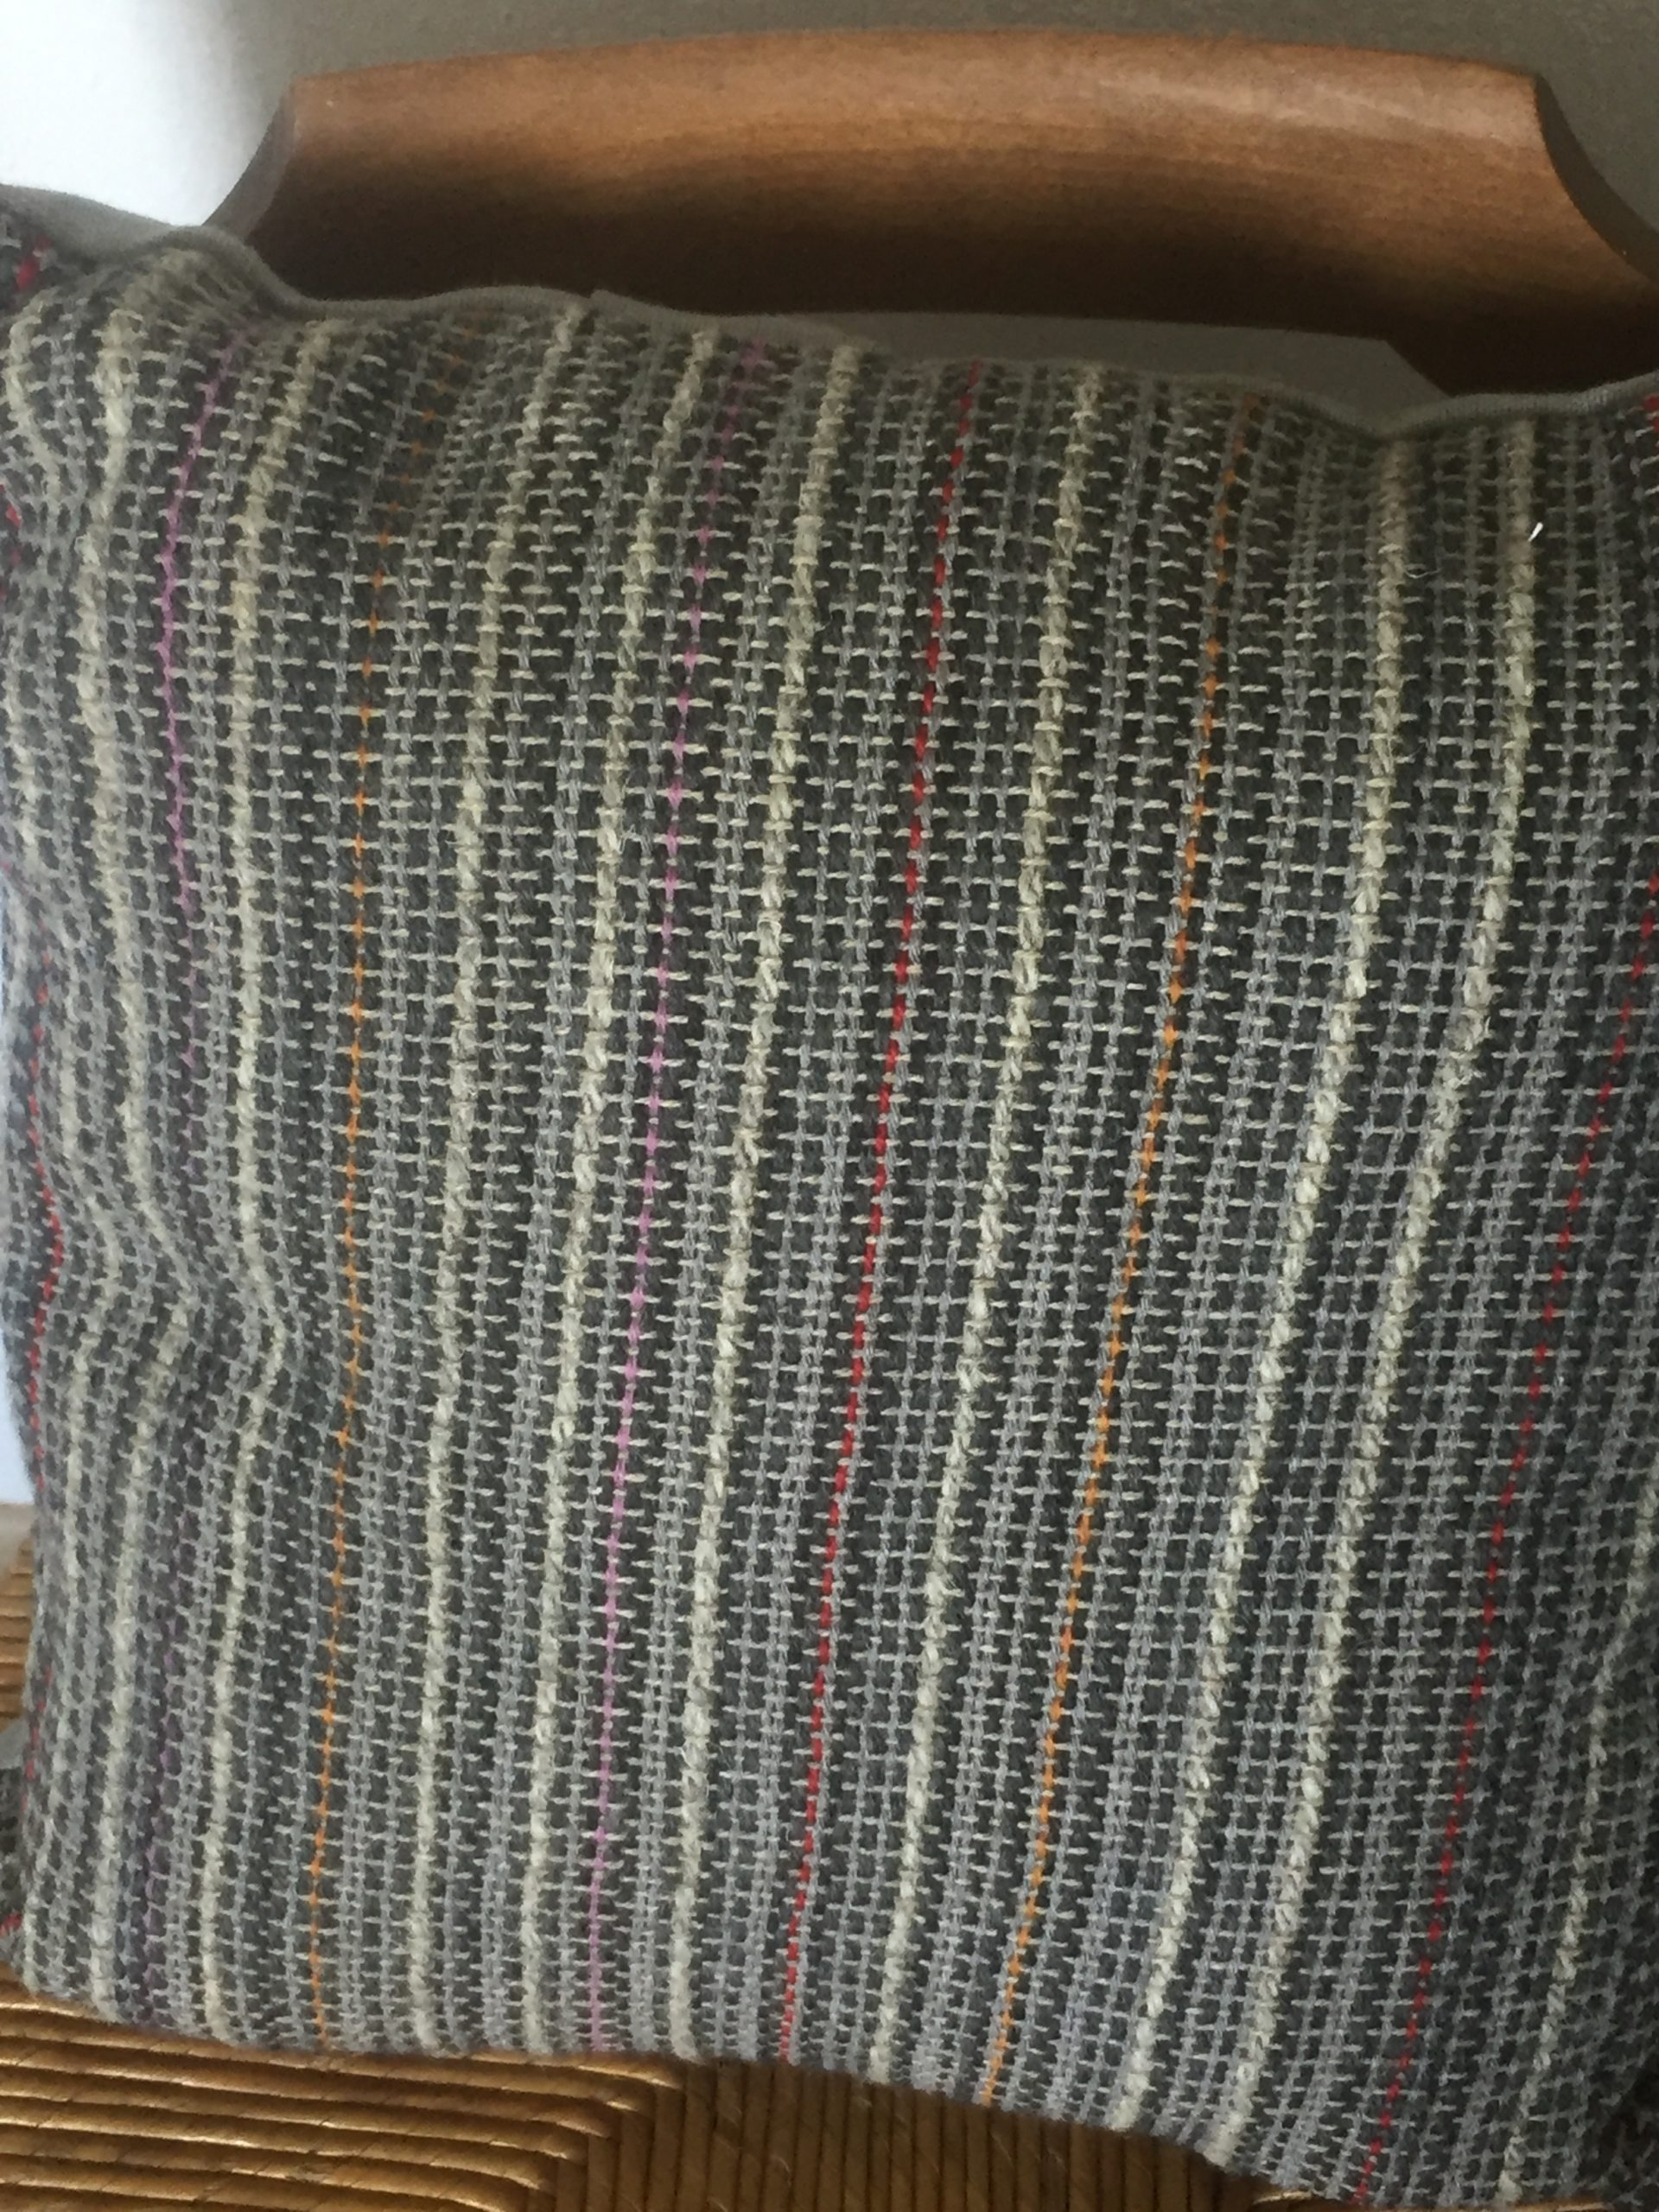 Handwoven Cushion Cover 50€ 40cm x 40cm (2 / 2)